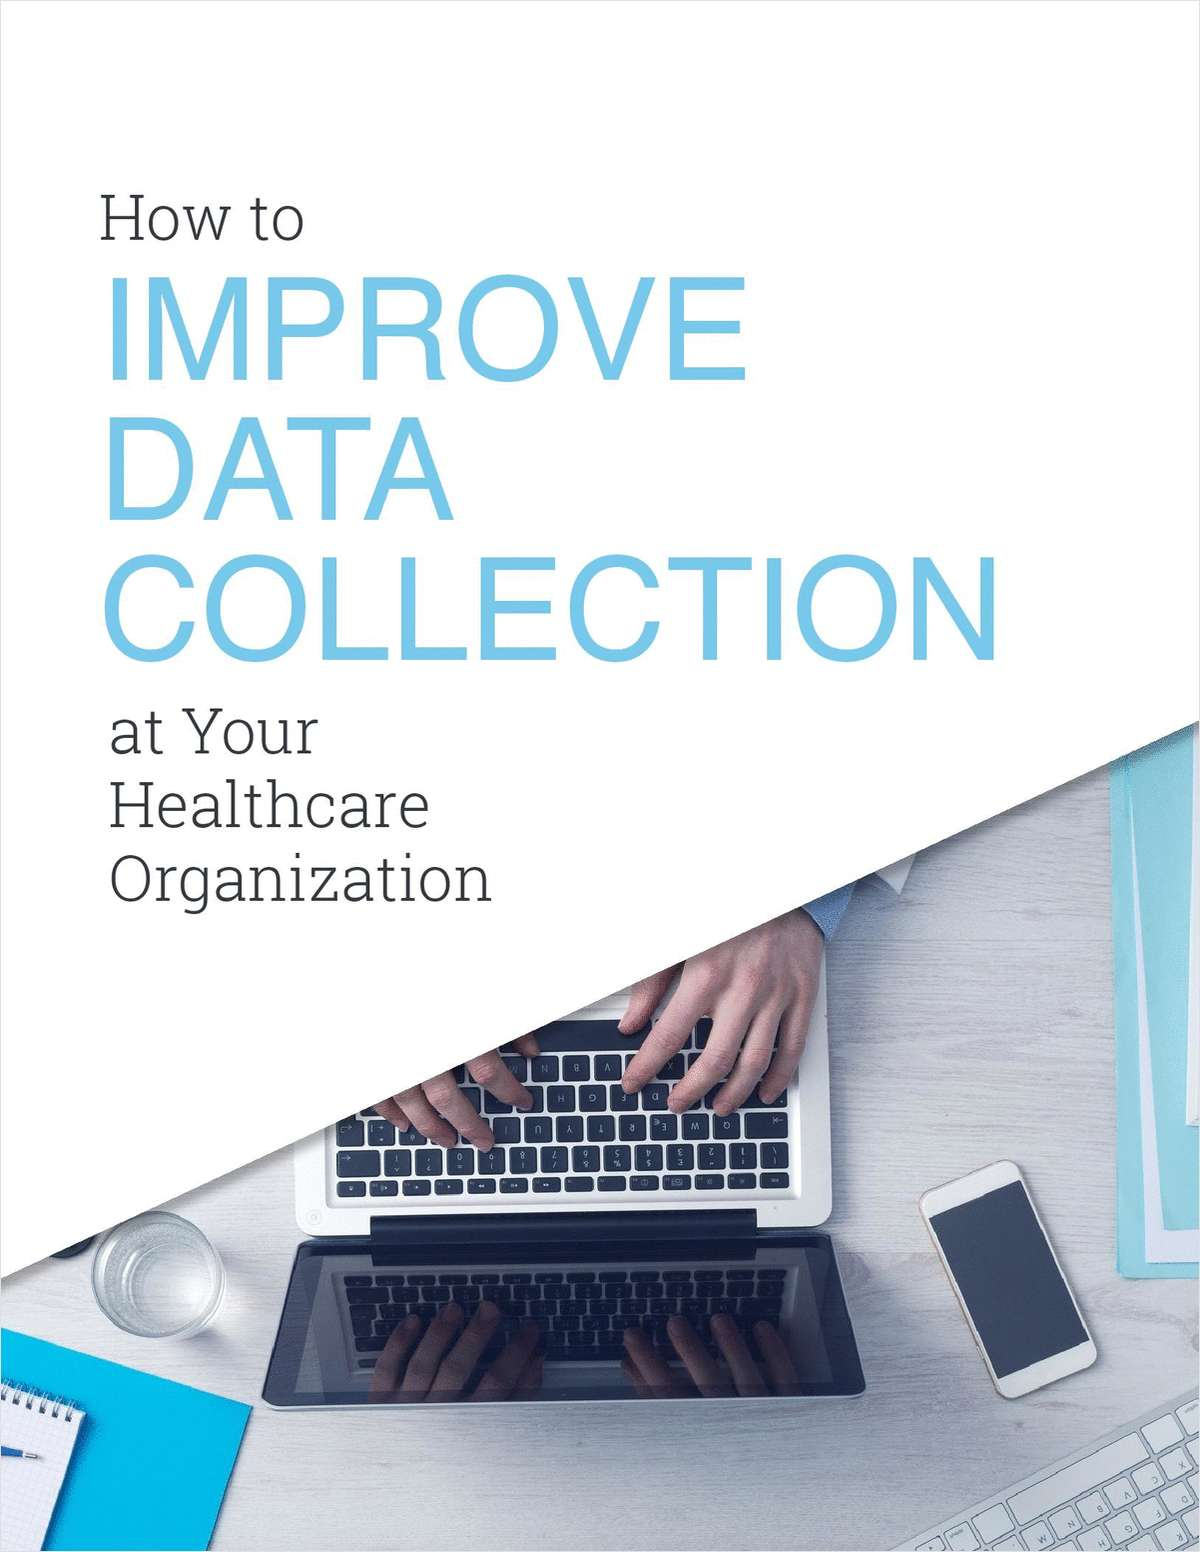 How to Improve Data Collection at Your Healthcare Organization